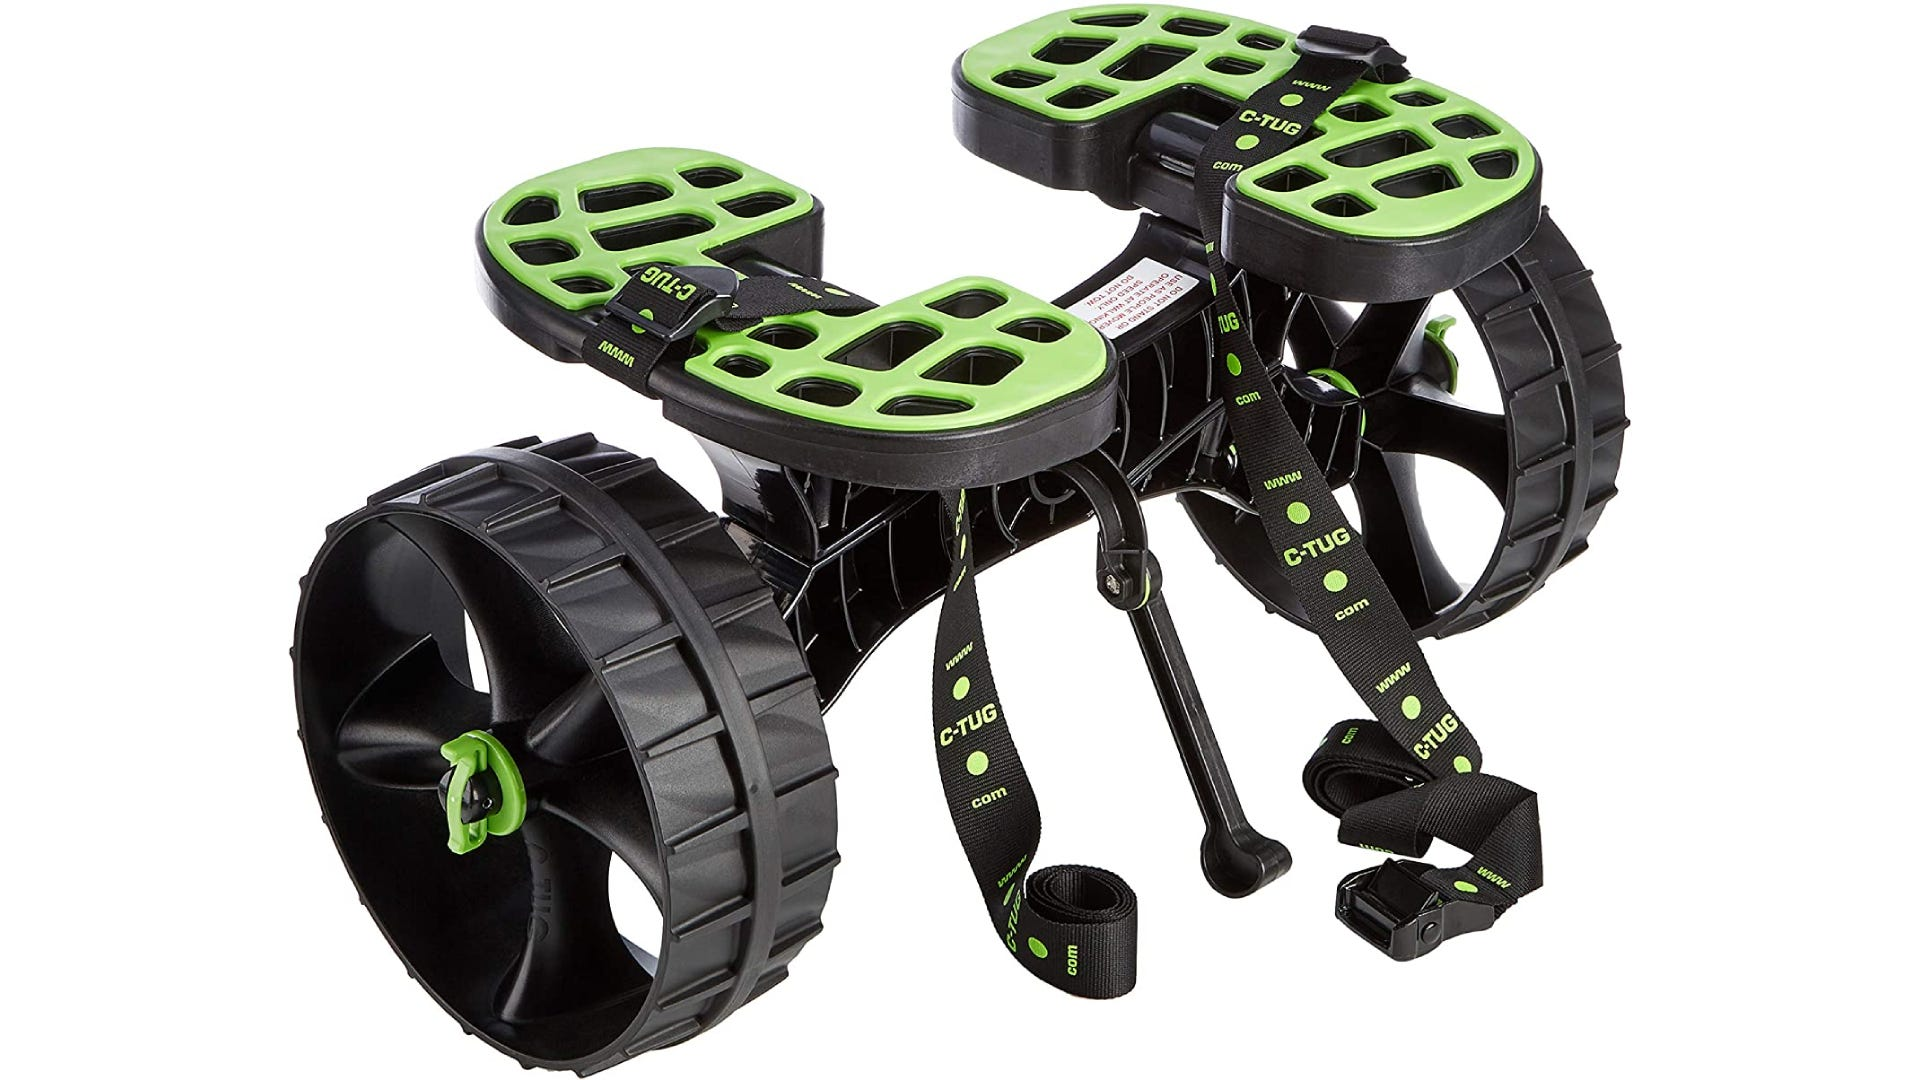 a kayak cart with two wheels and green accent son the platform, wheels, and straps